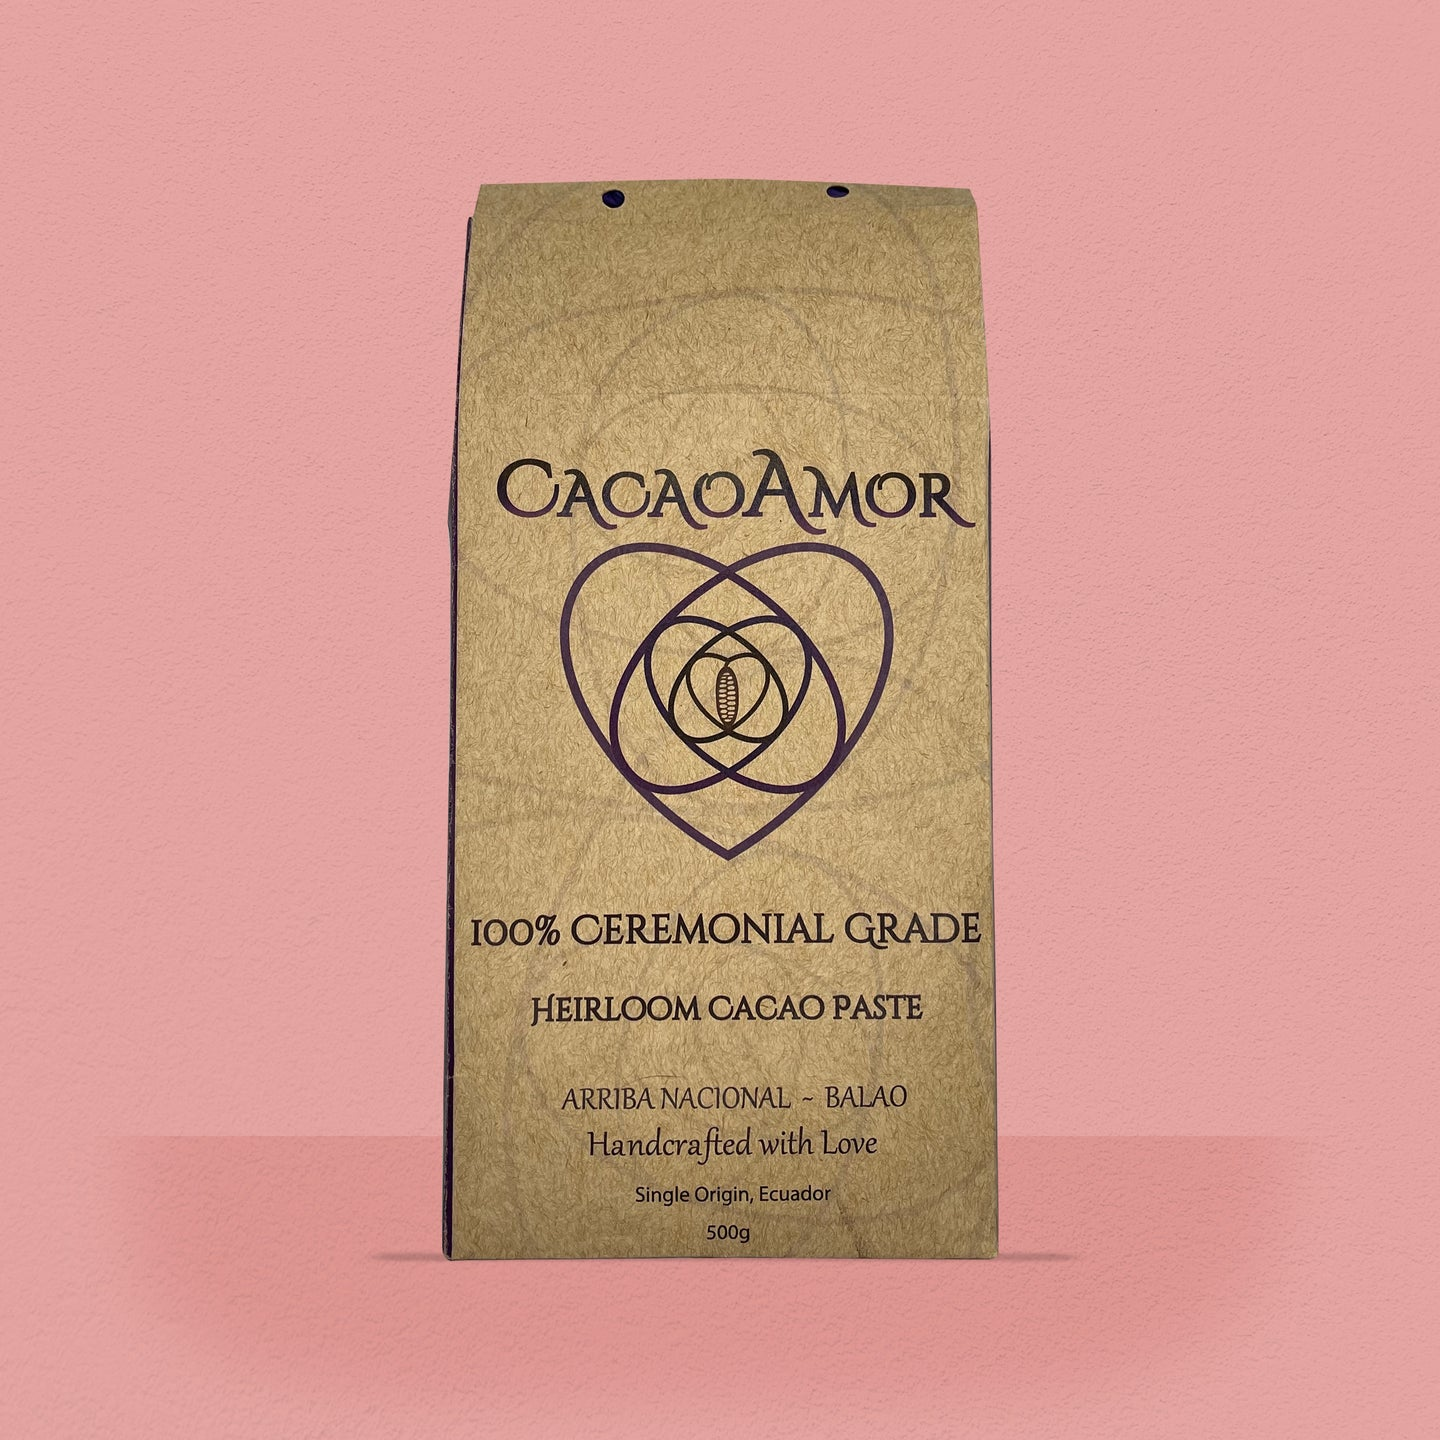 Ceremonial Cacao Paste - 500g block